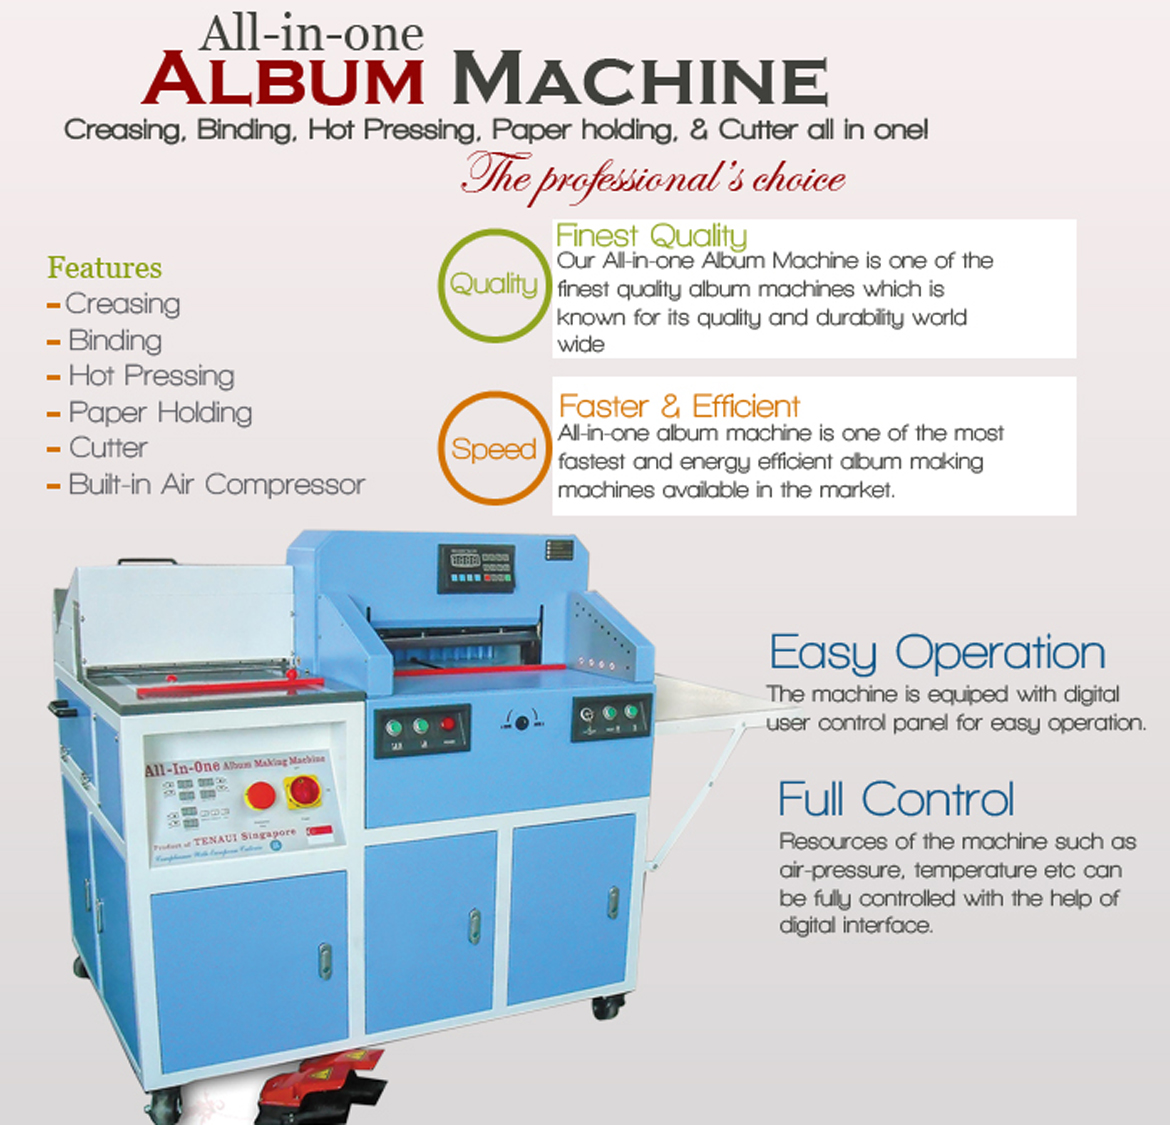 all-in-one-album-machine-tenaui1